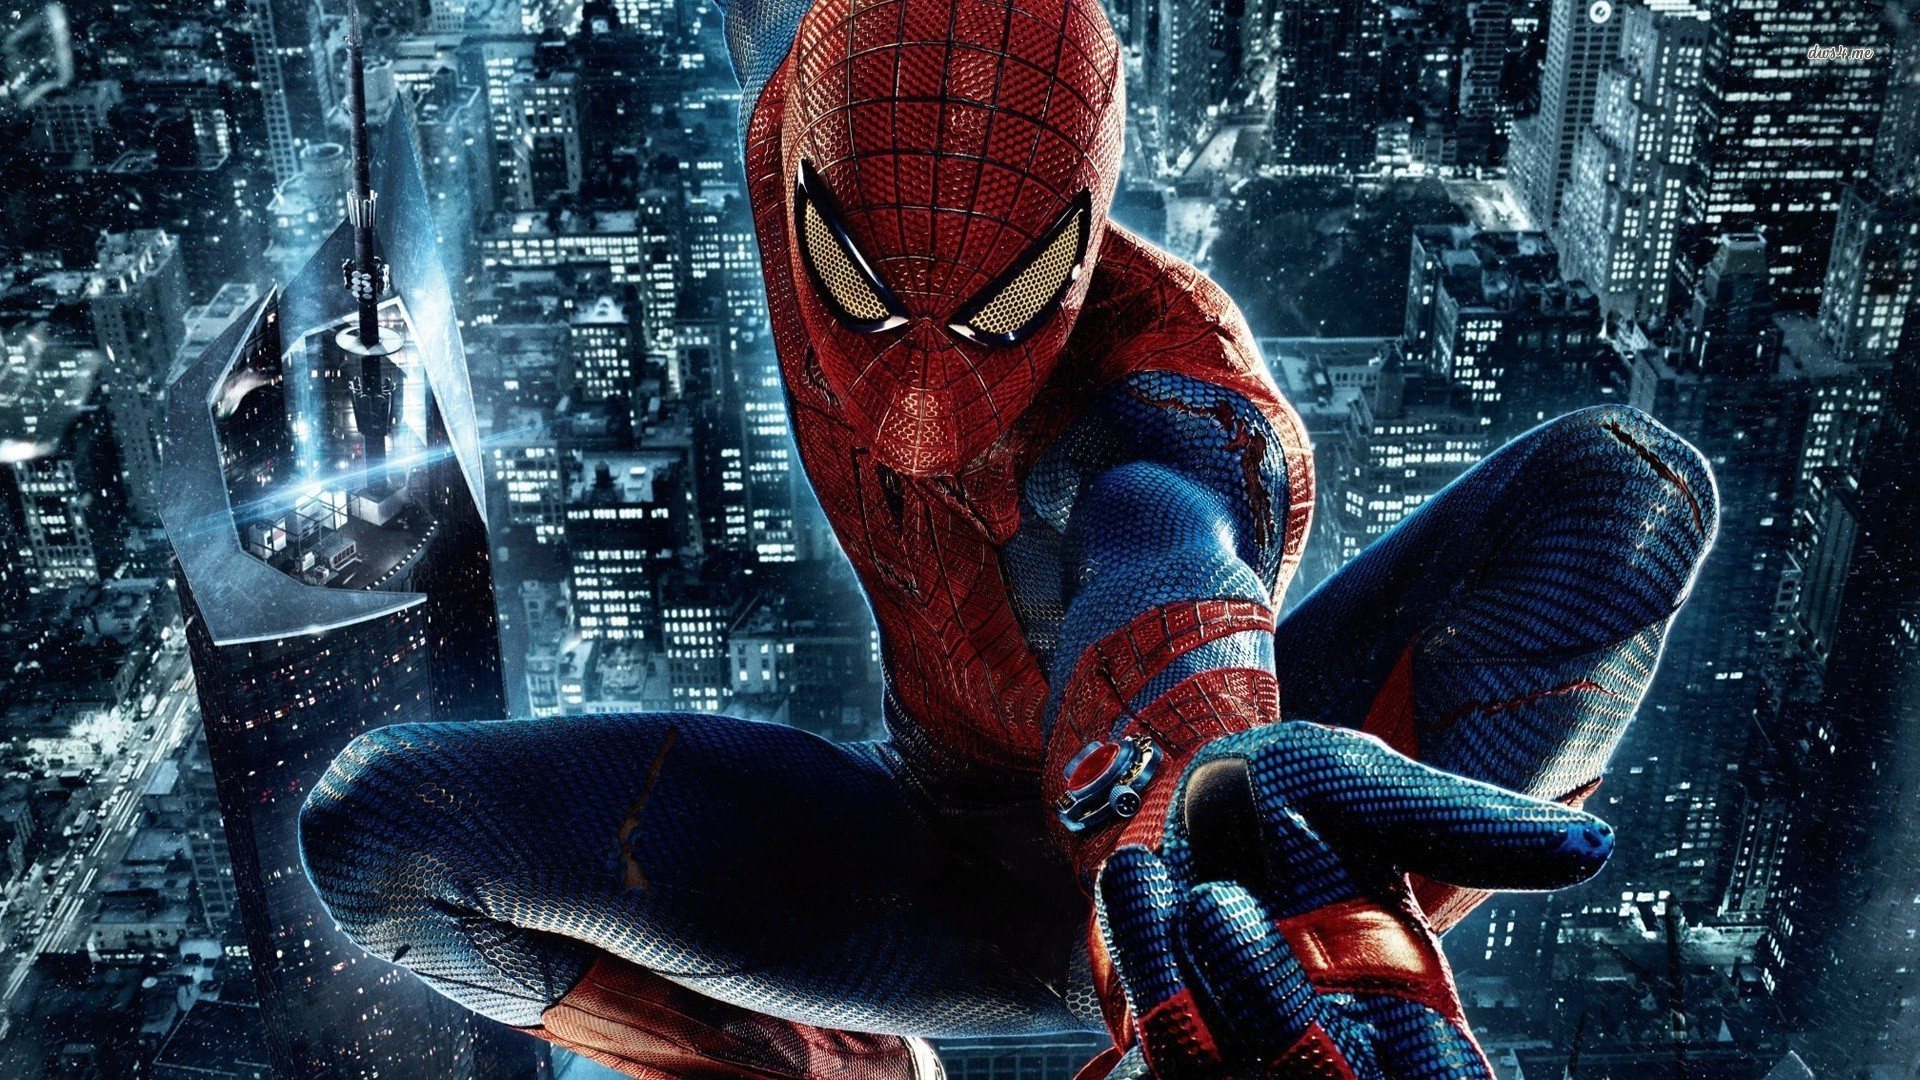 Spiderman 3 Hd Wallpapers 1080p: Spiderman Wallpaper HD ·① Download Free HD Wallpapers For